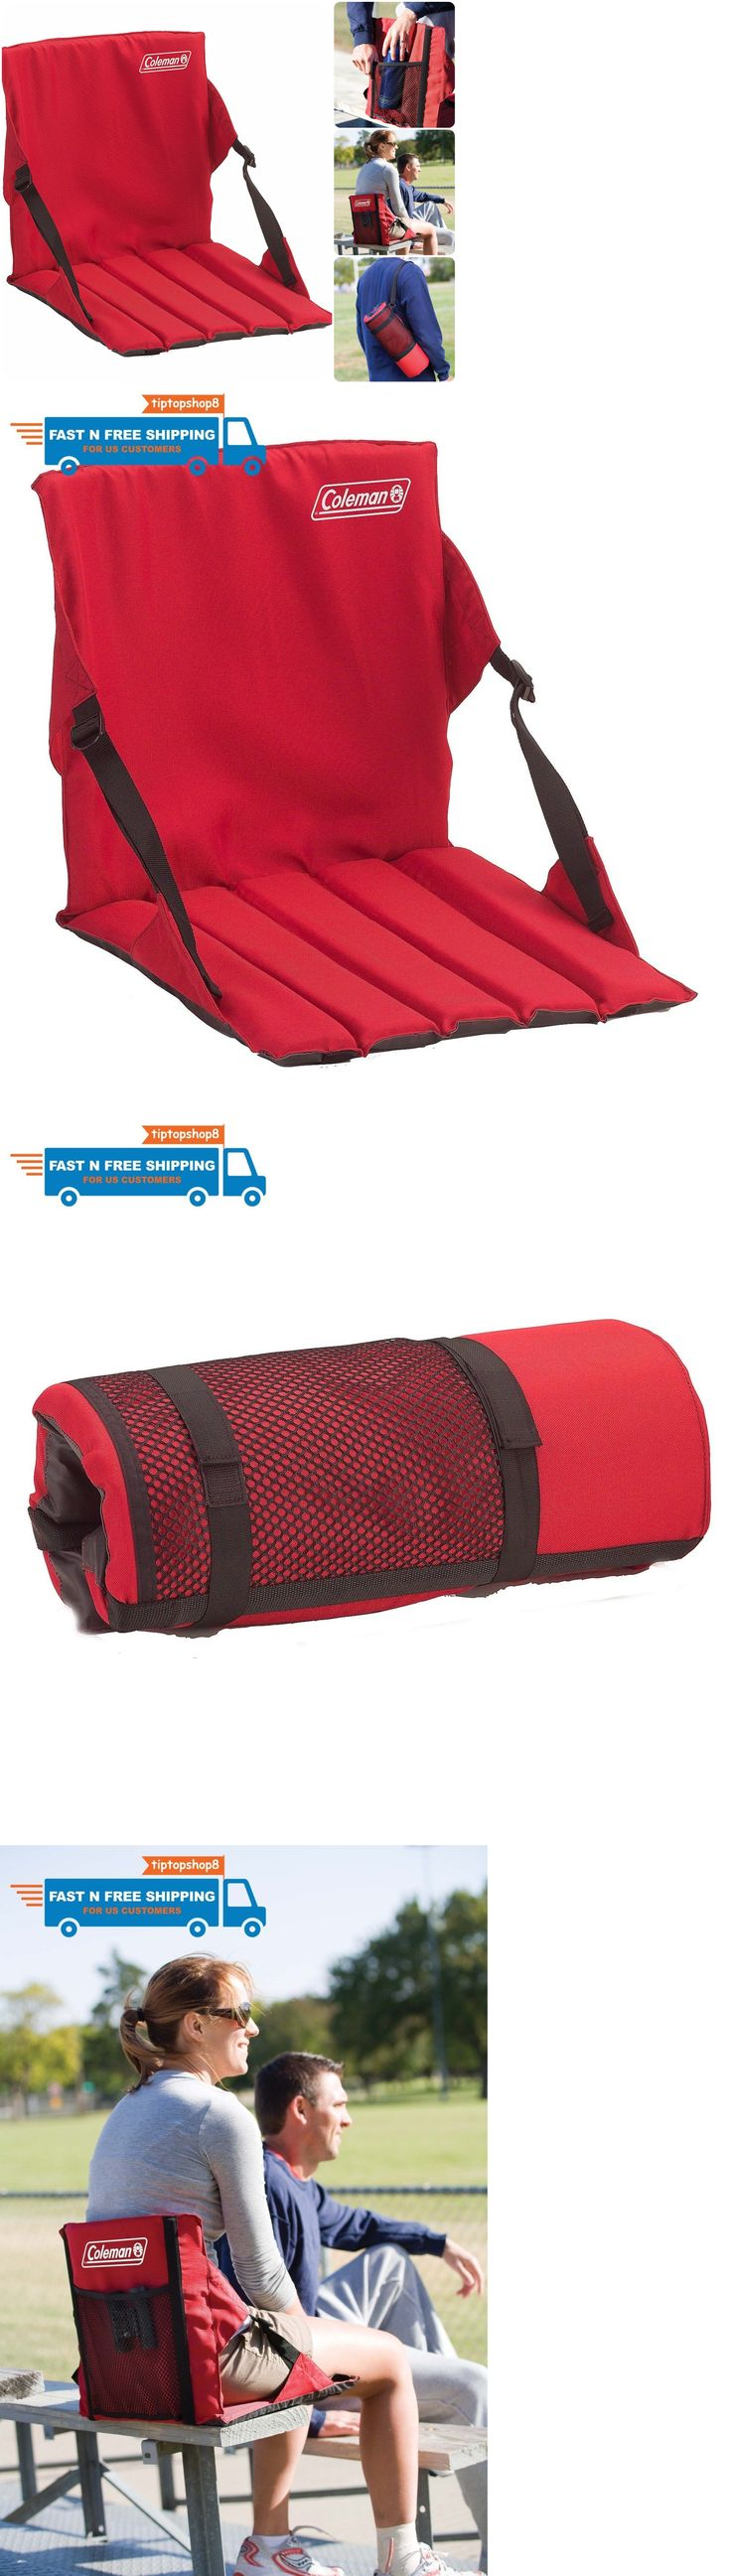 Other Outdoor Sports 159048: Portable Seat Folding Bleacher Seats With Backs Padded Red Stadium Chair Cushion -> BUY IT NOW ONLY: $79.4 on eBay!